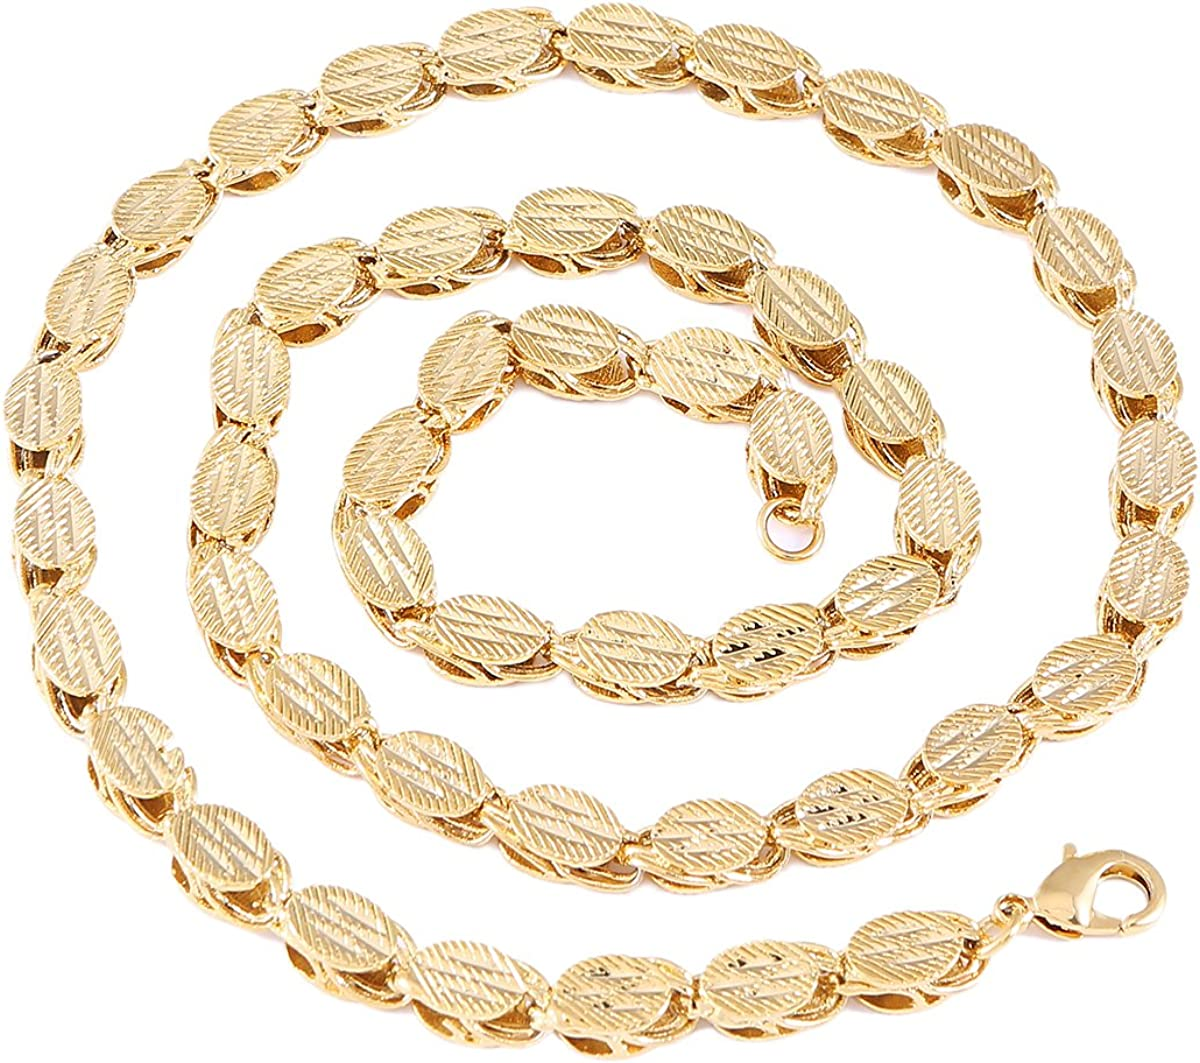 60cm 7mm Ethiopian Thick Necklaces Gold Color Africa Eritrea Chunky Chain Dubai Arab Jewelry